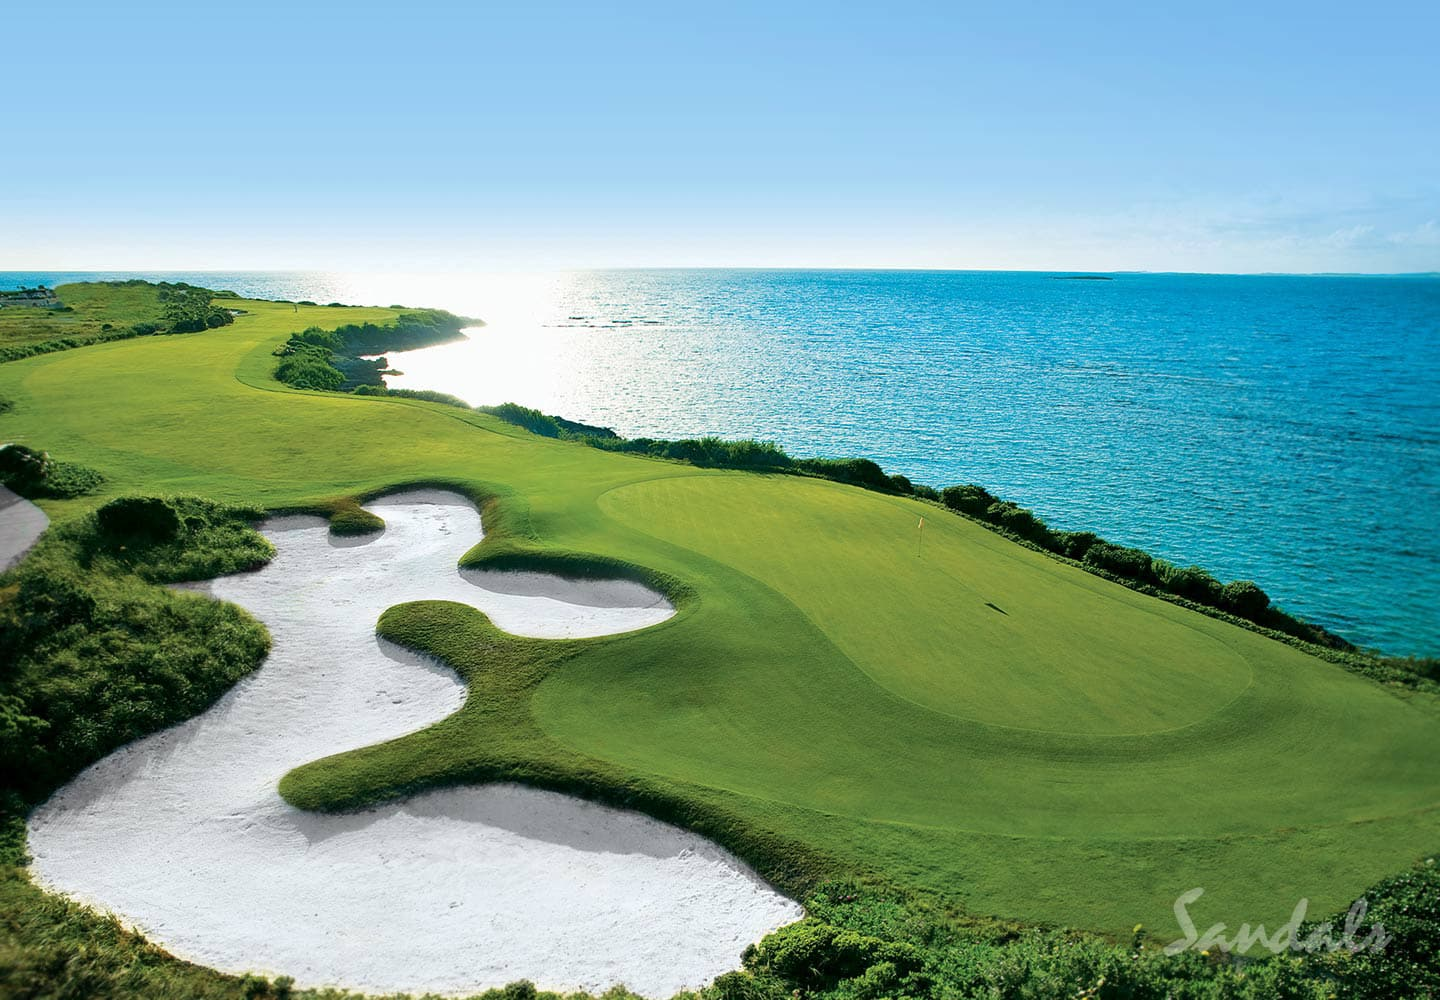 bird eye view of the Sandals Emerald Bay Golf, Spa and Tennis Resort at Great Exuma, Bahamas, vacation packages adults only, Southern Travel Agency, Augusta, GA